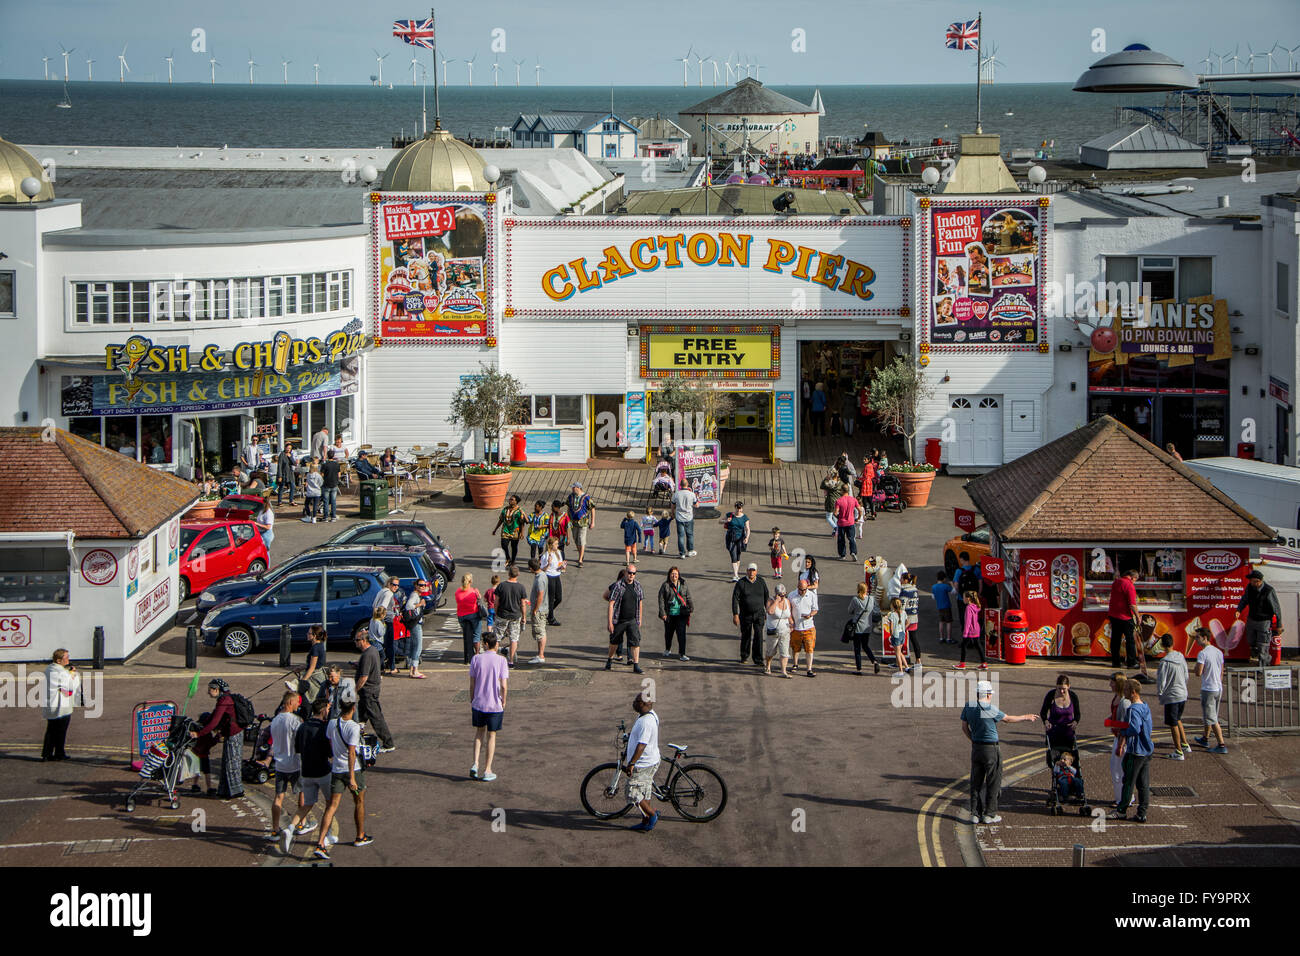 Pier on a Pier on Bank Holiday Weekend in Clacton-on-Sea, Essex, England - Stock Image